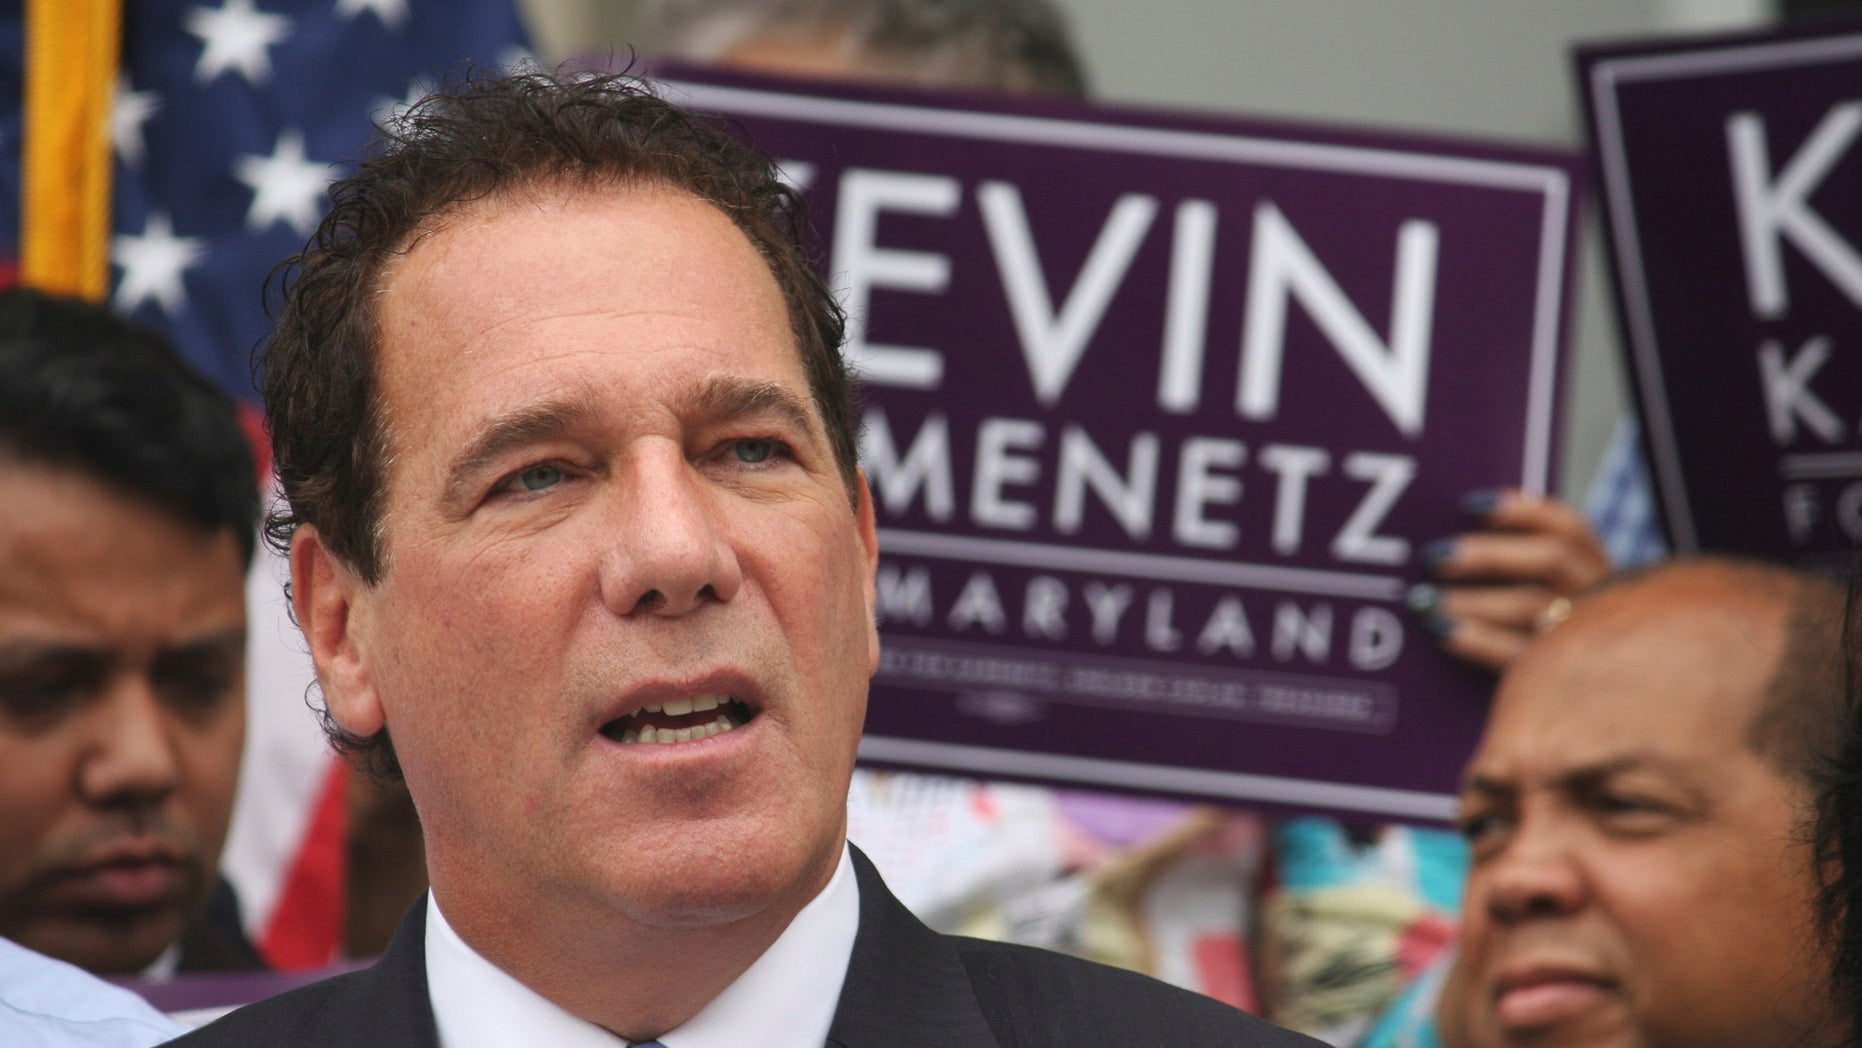 FILE - In this Sept. 18, 2017, file photo, Baltimore County Executive Kevin Kamenetz announces he is joining the race for governor in Towson, Md. Kamenetz is running in a crowded Democratic primary. News outlets cite a release from Baltimore County police that says Kamenetz died early Thursday, May 10, 2018, following a cardiac arrest. (AP Photo/Brian Witte, File)